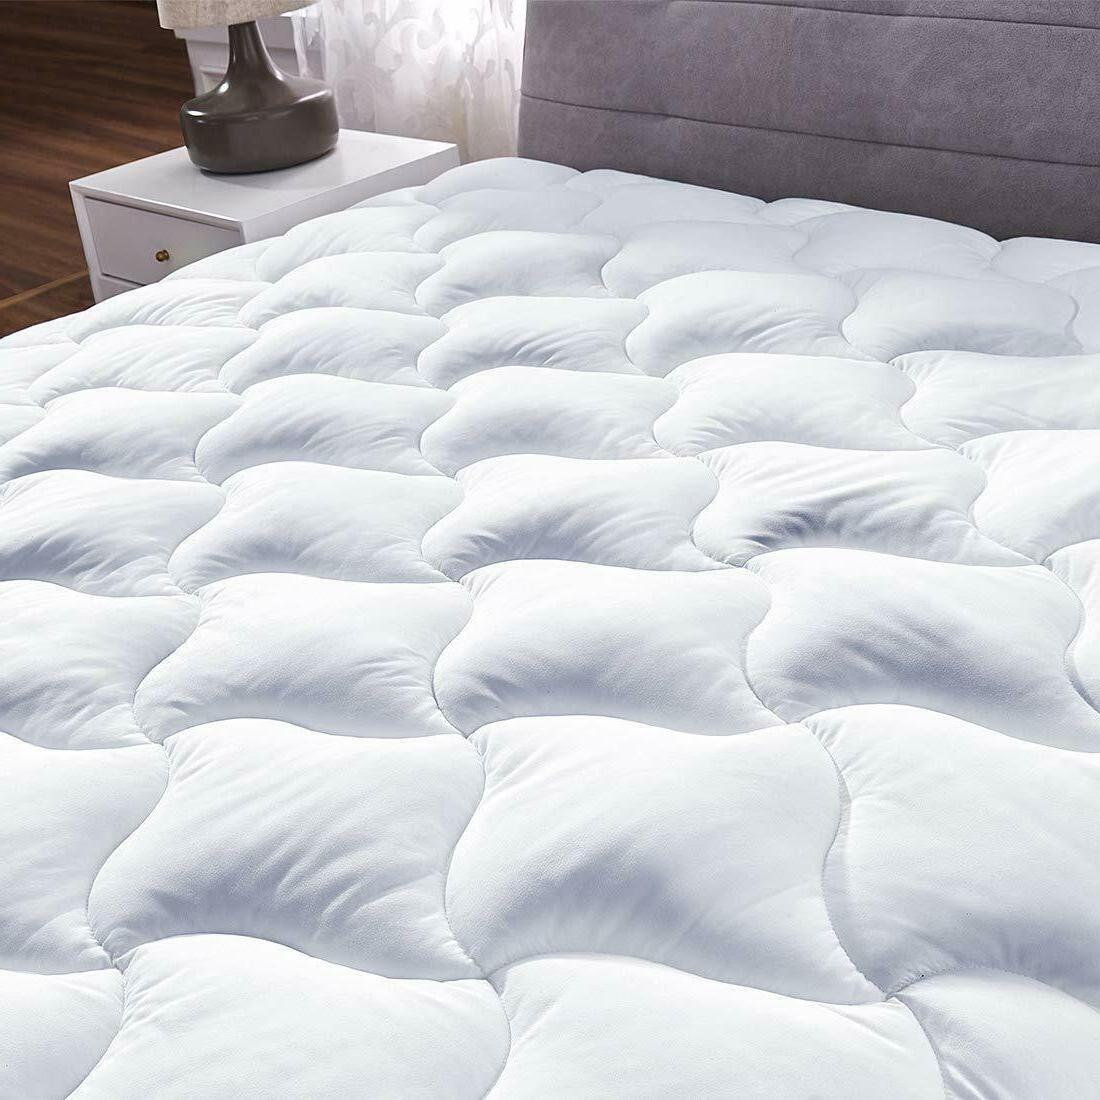 YOUMAKO Cooling Mattress Pad Cover Quilted Pillowtop Overfil